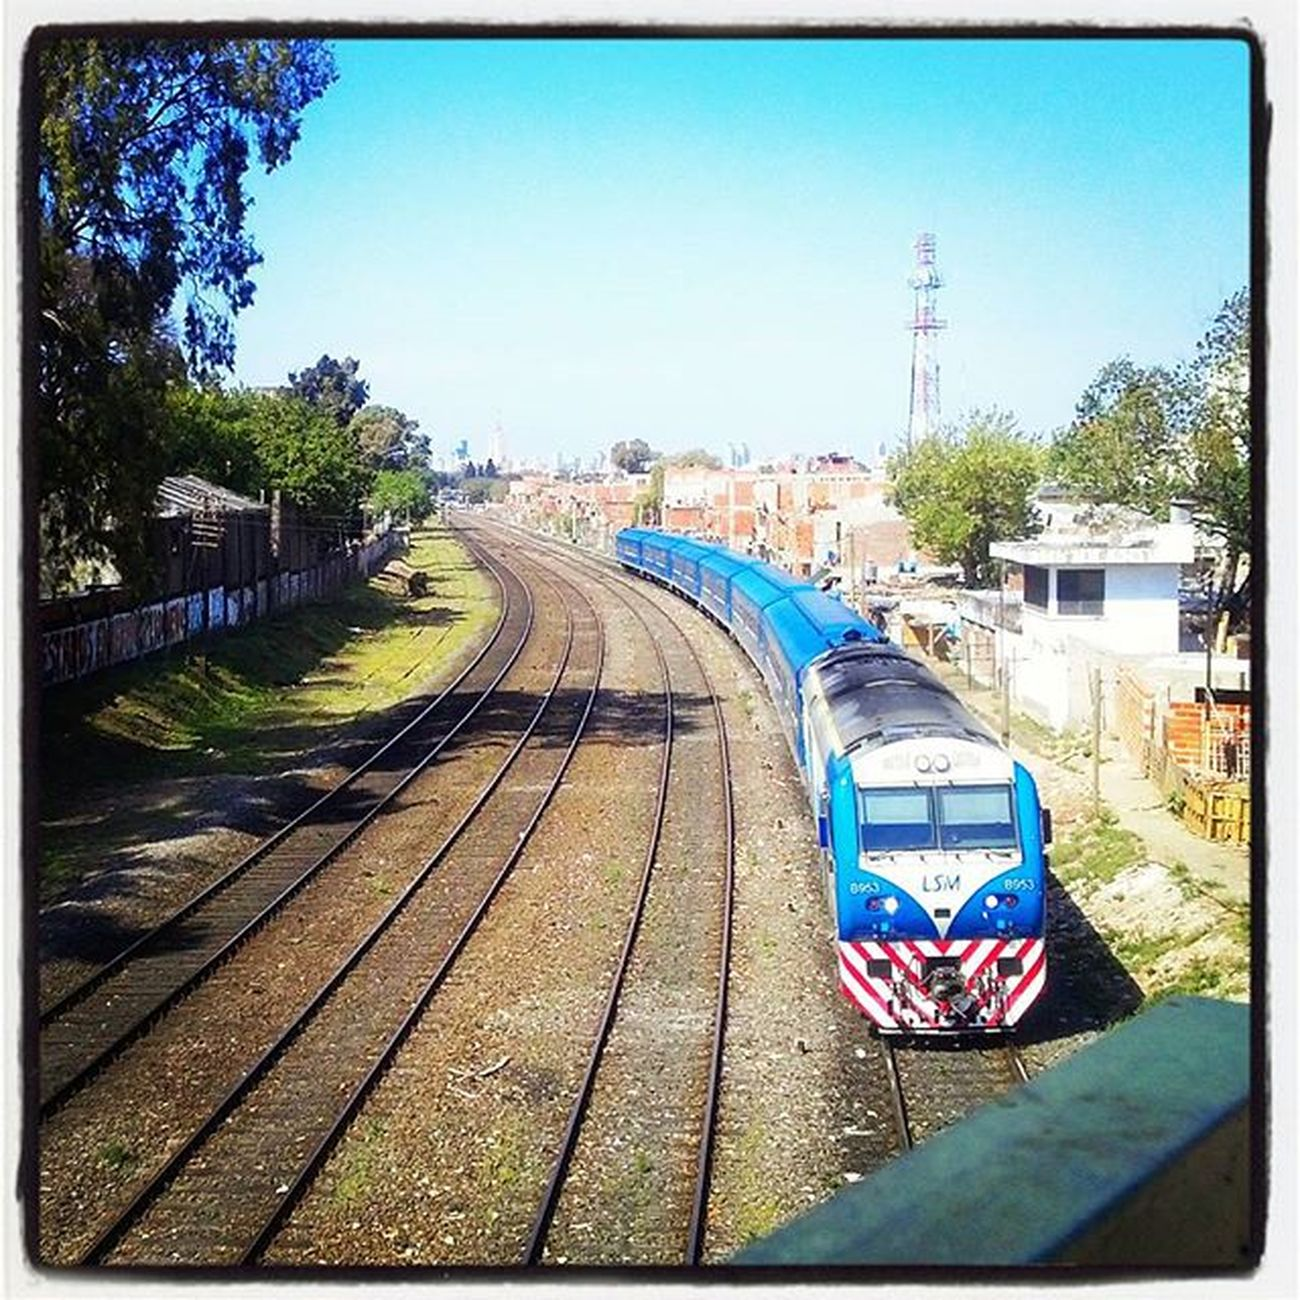 Agronomia Tren Barrio Puente Train Railroad Tracks Tren Traintracks Trains Railway Rail Track Rails Trains_worldwide Train_nerds Railways_of_our_world Railstagram Railfans Railfan Instatrain Railways Railroads Rail_barons Argentina buenosaires bsas southamerica baires igersbsas